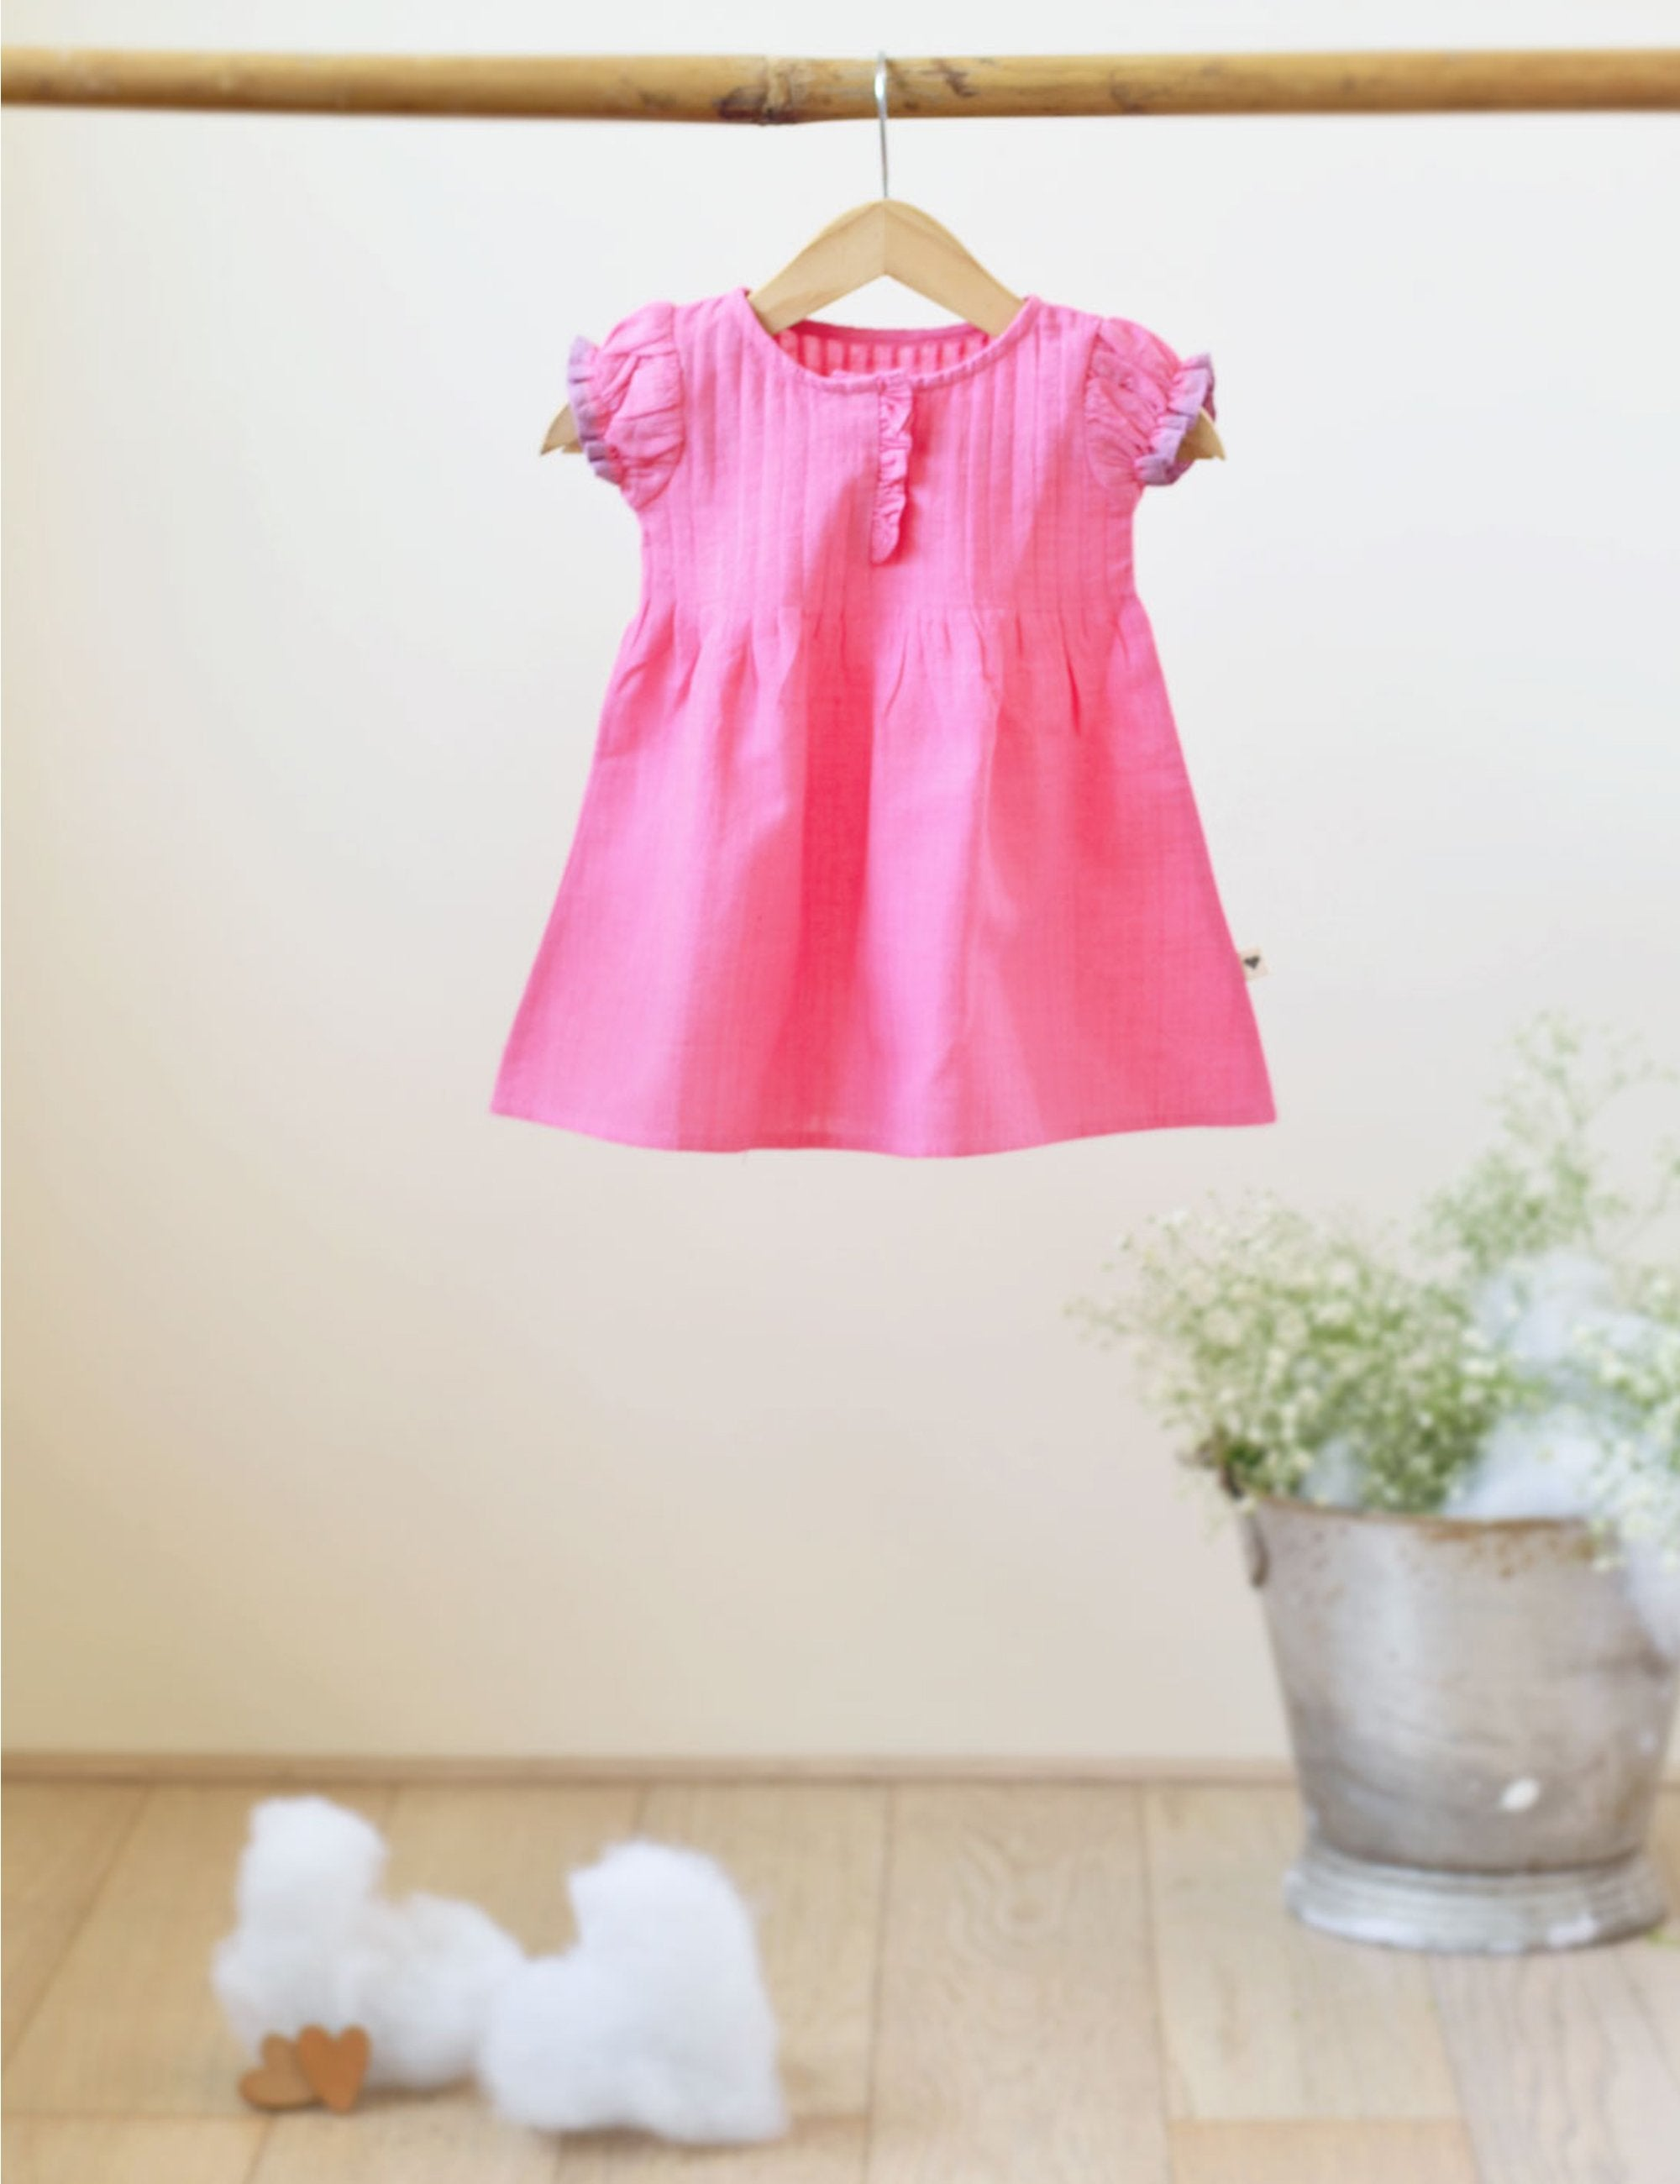 Pin Tuck Dress in Pink Solid